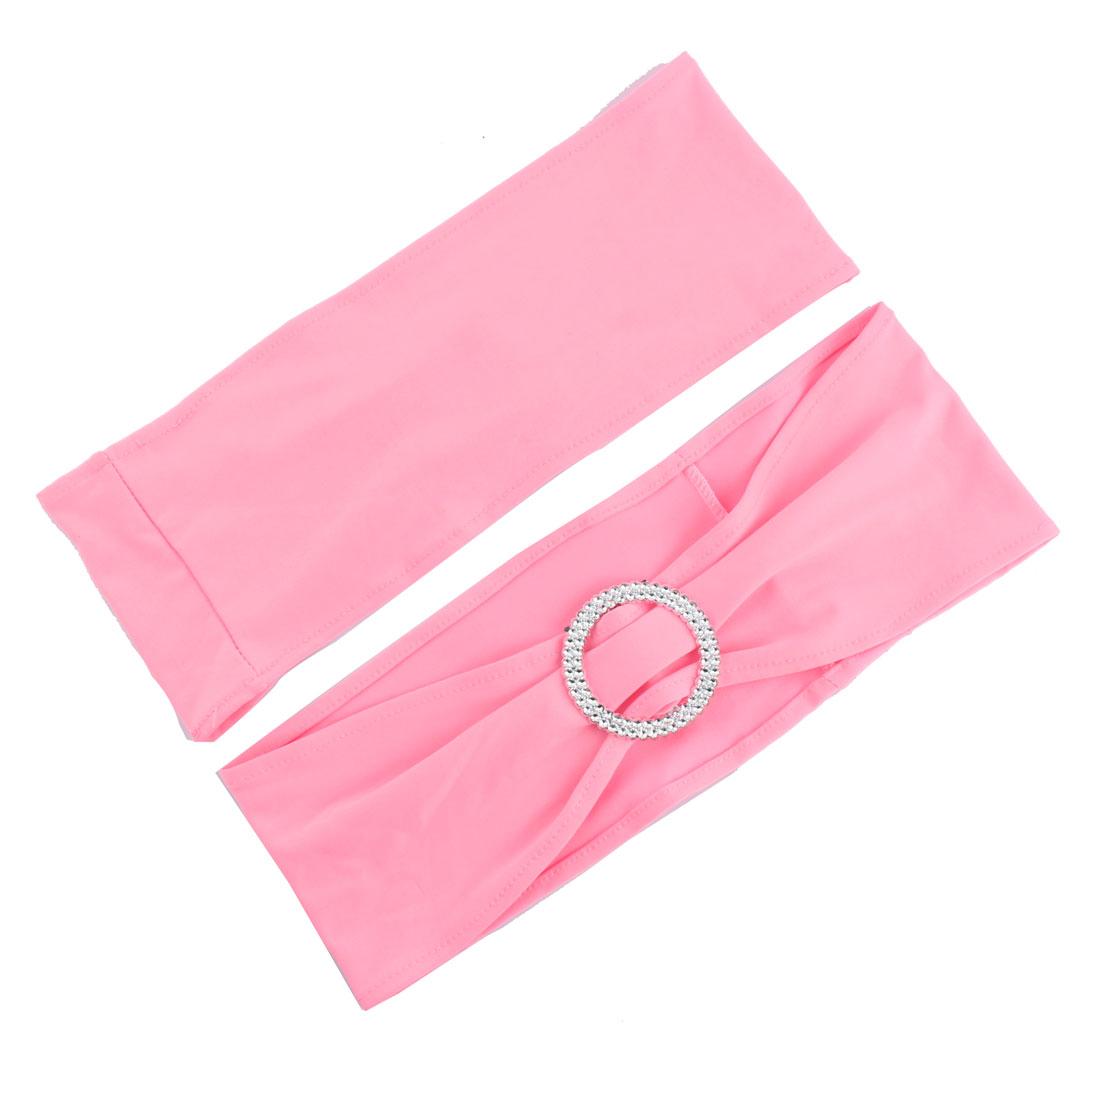 Wedding Banquet Plastic Ring Elastic Fabric Seat Chair Back Decoration Adornment Pink 2pcs